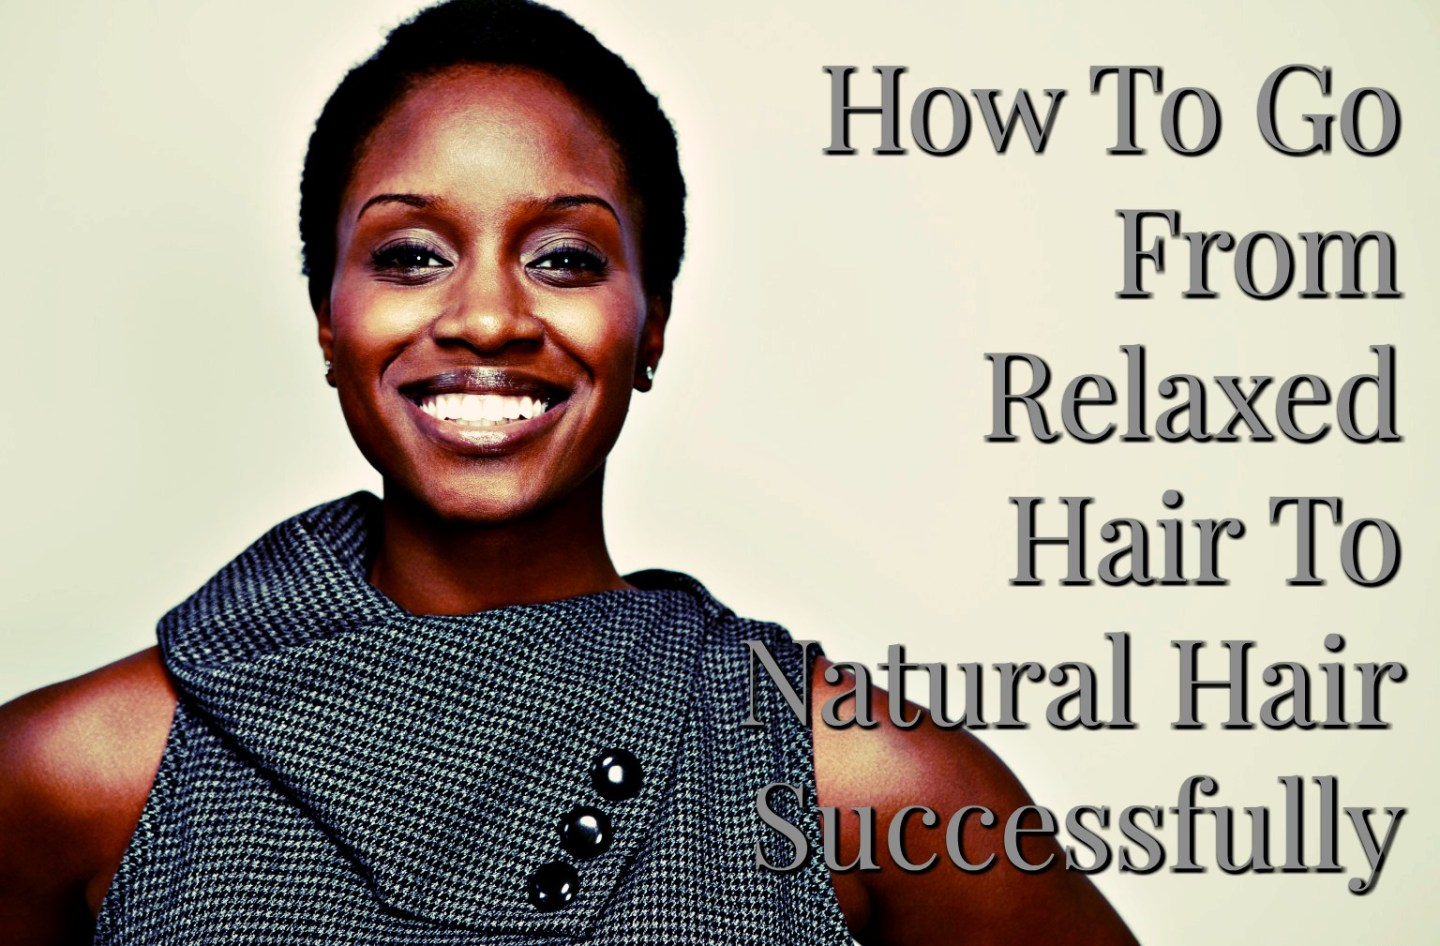 Go From Relaxed Hair To Natural Hair Without The Natural Hair Problems